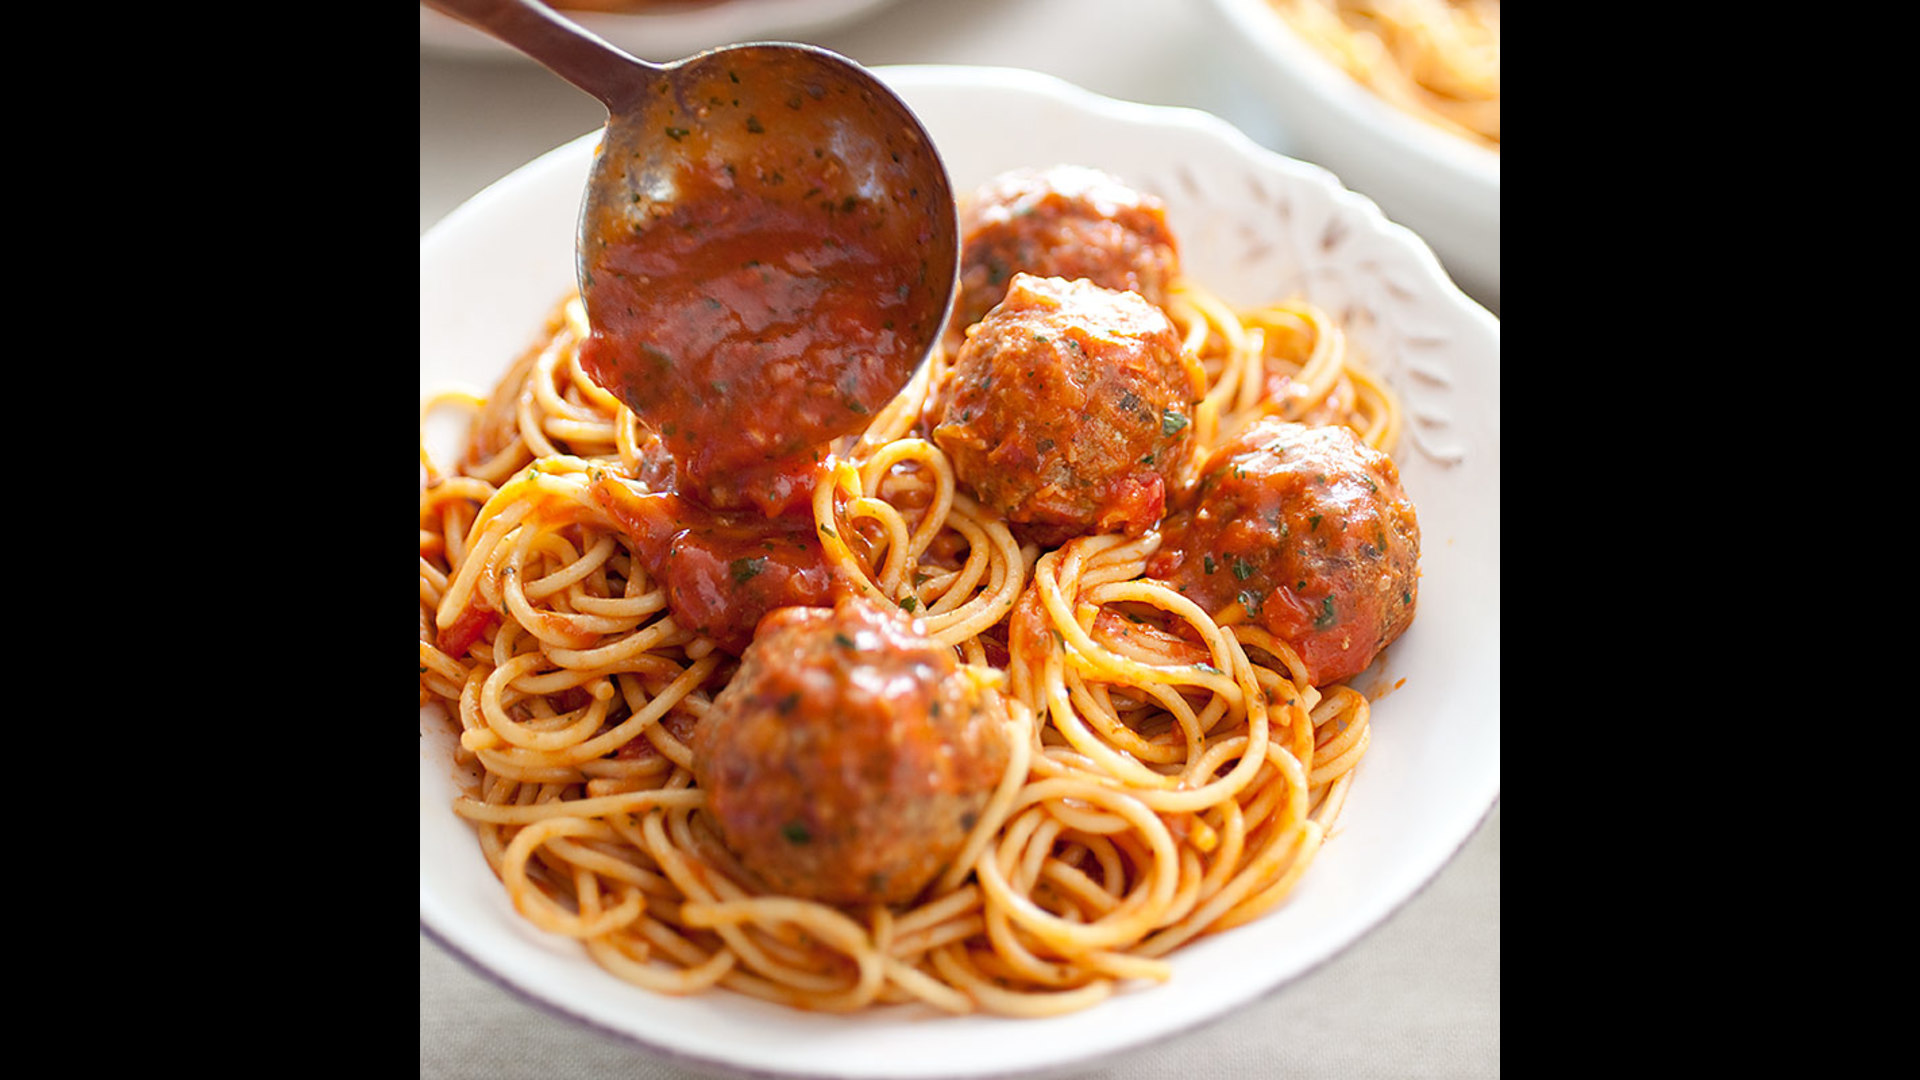 How to cook spaghetti and meatballs in the oven